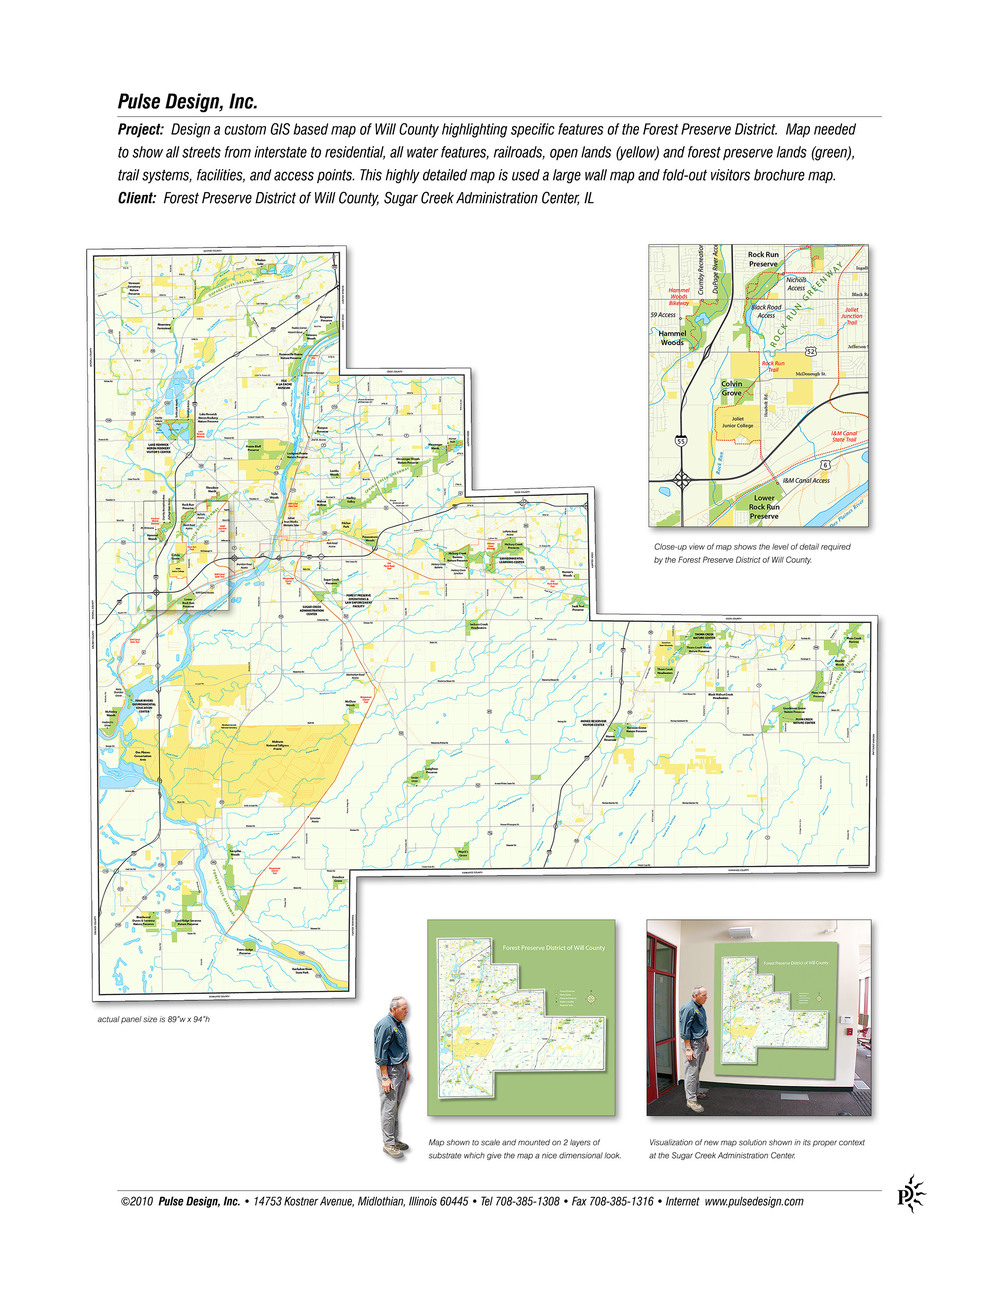 Will-County-Forest-Map-3-Sign-Pulse-Design-Inc.jpg